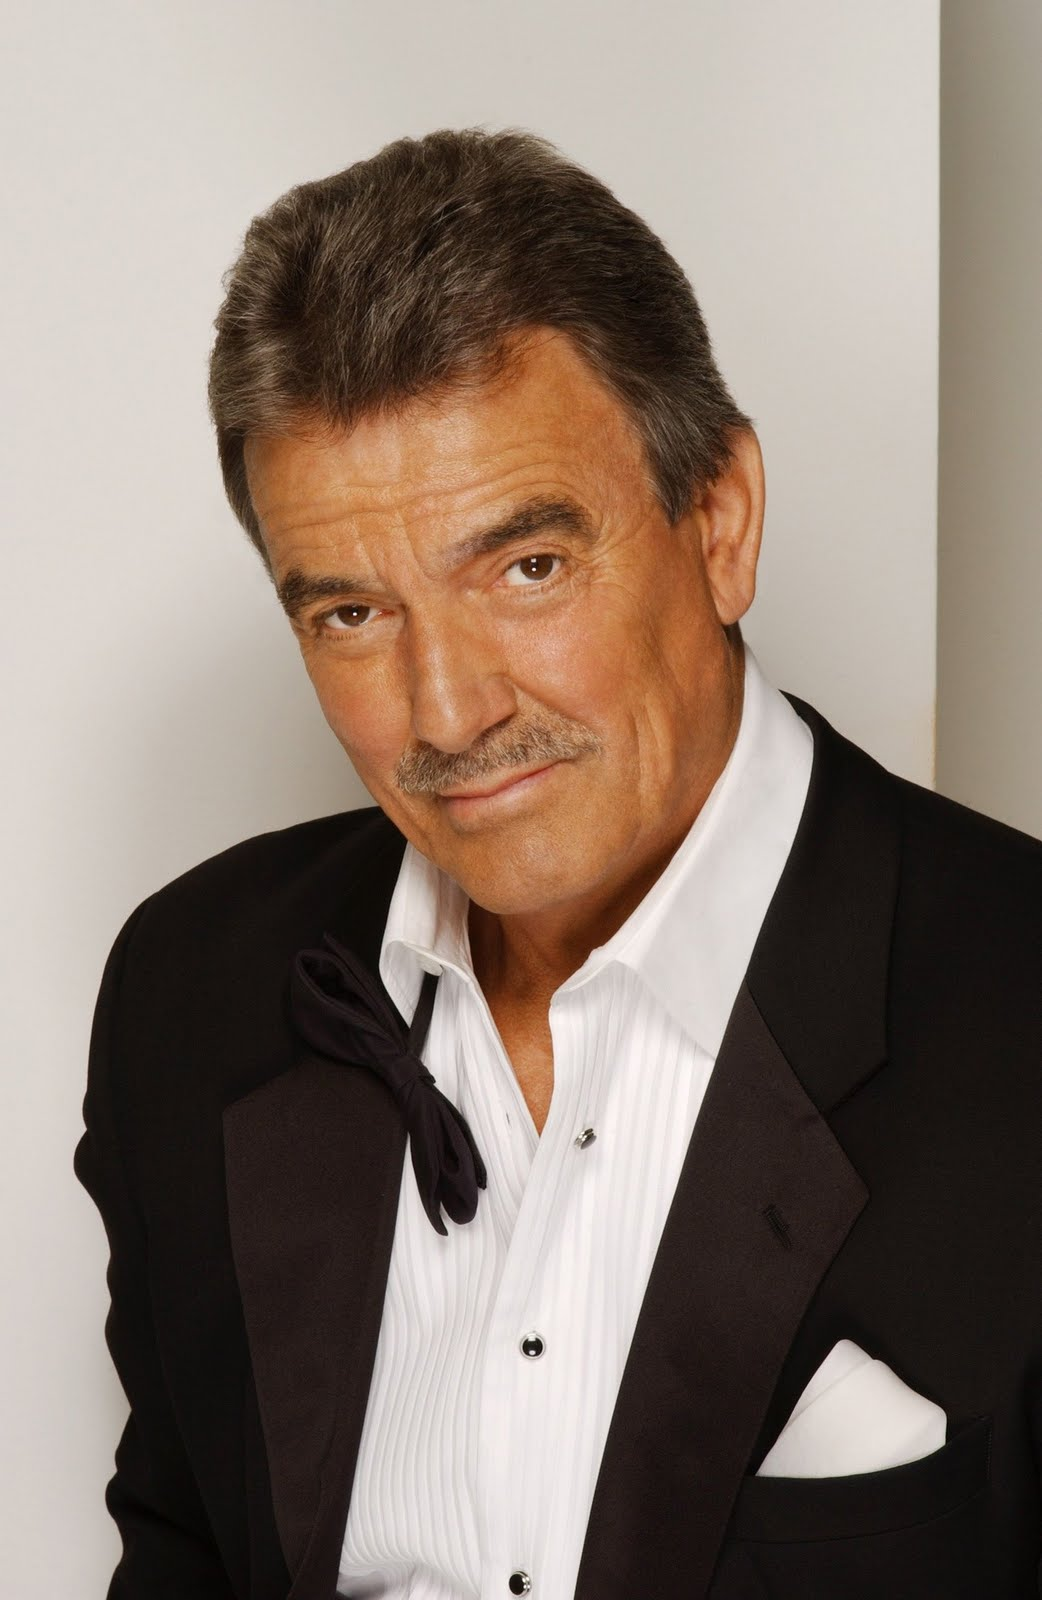 The 76-year old son of father (?) and mother(?), 185 cm tall Eric Braeden in 2017 photo